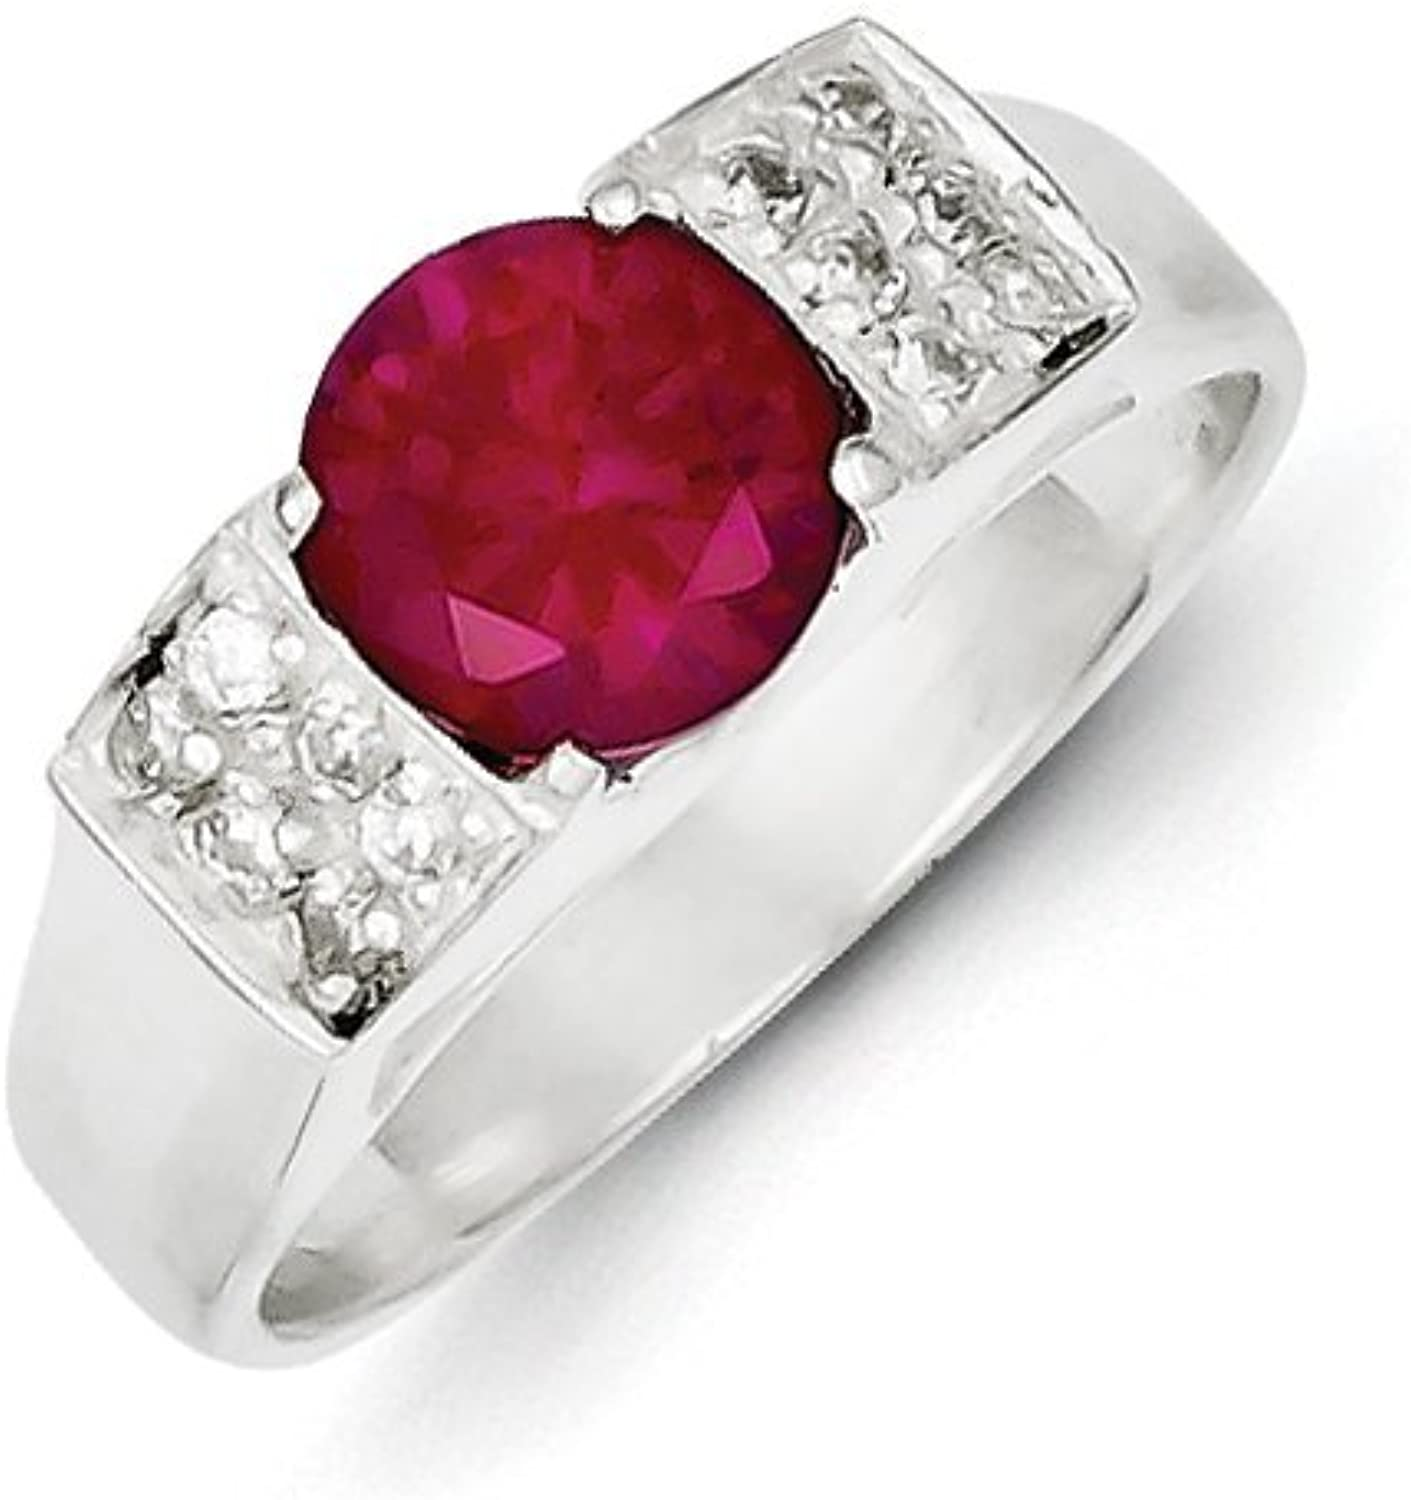 gold and Watches Sterling Silver Red Round w Pave Sides CZ Ring